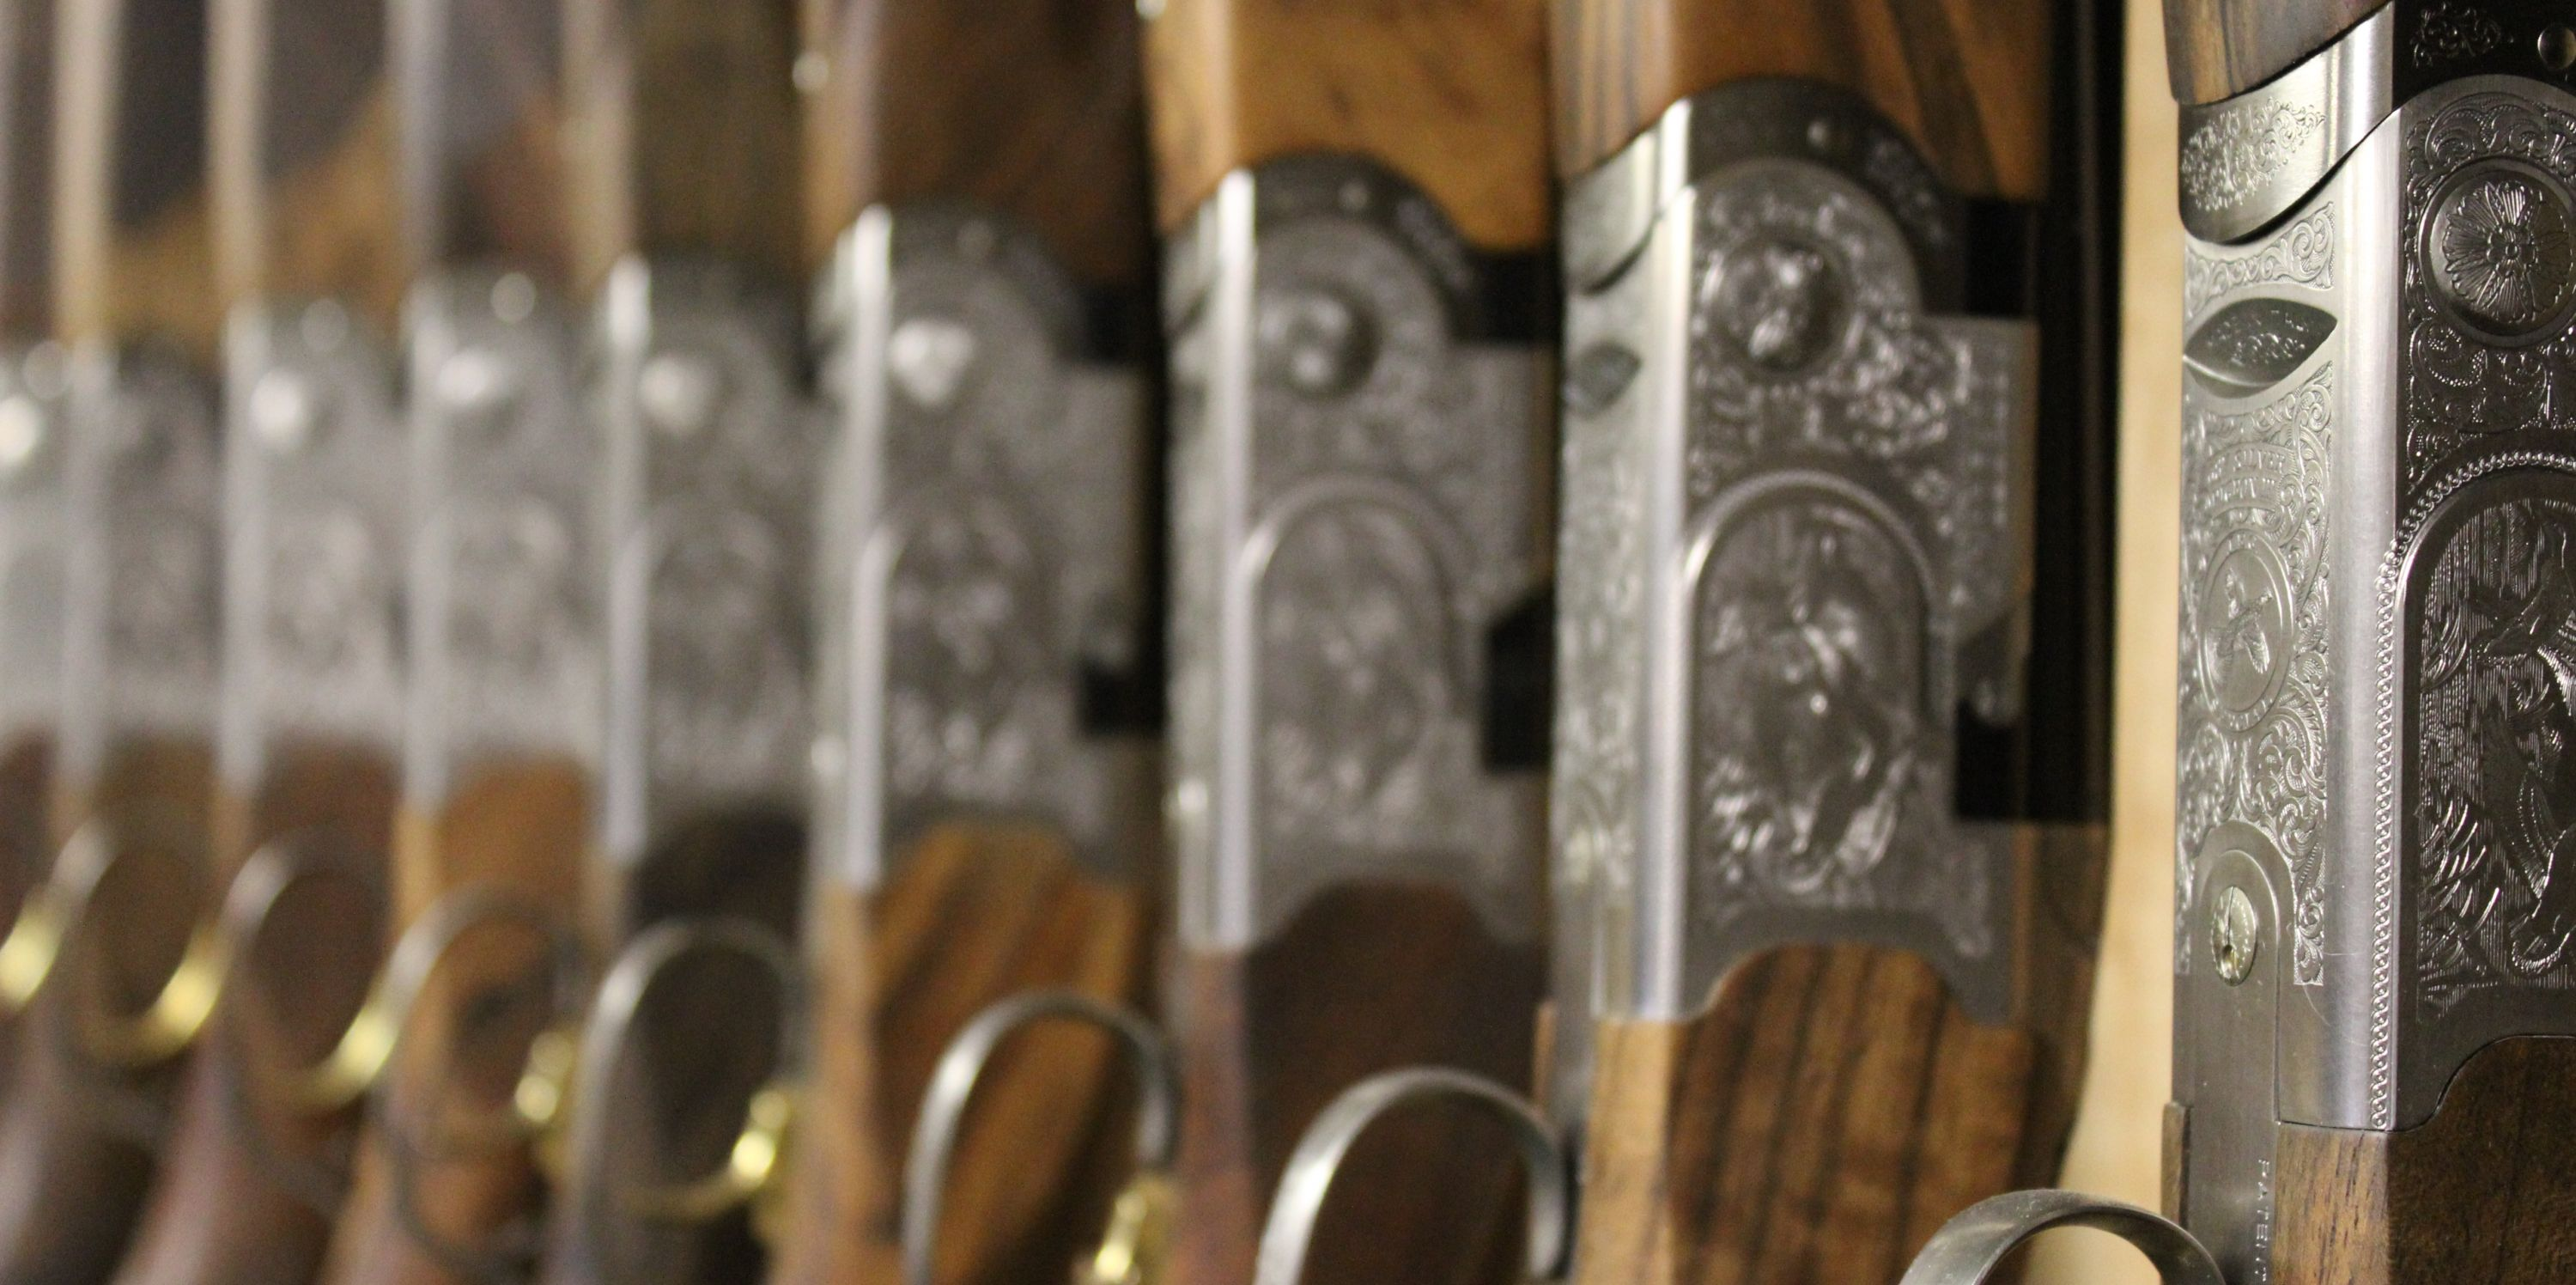 Beretta 687 Silver Pigeon 3 Signature Series 20 & 28 combos